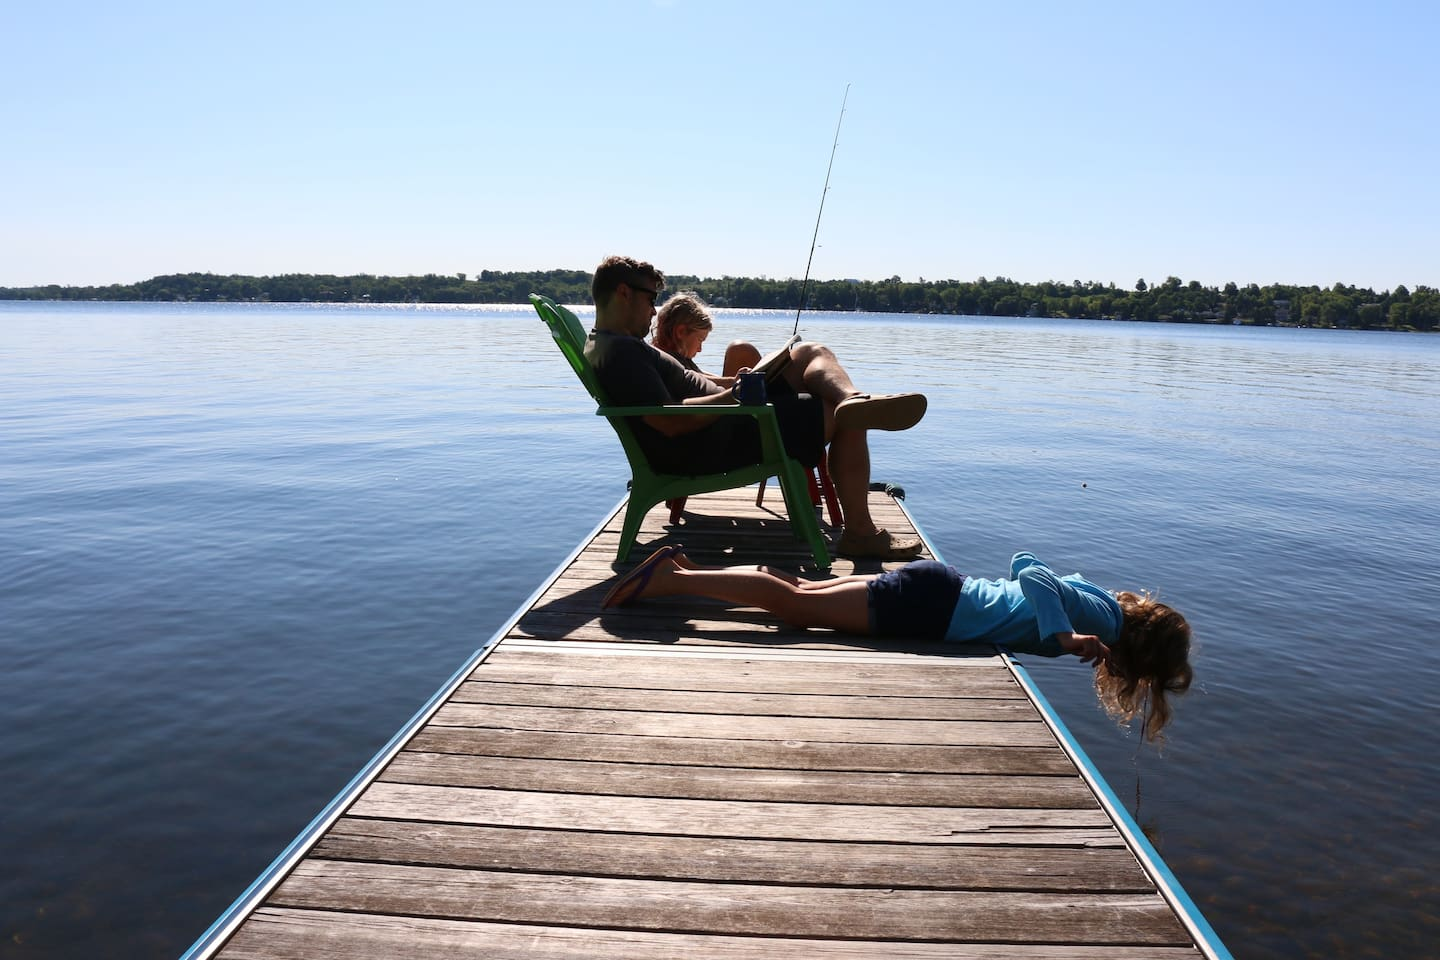 read, fish and relax on the dock